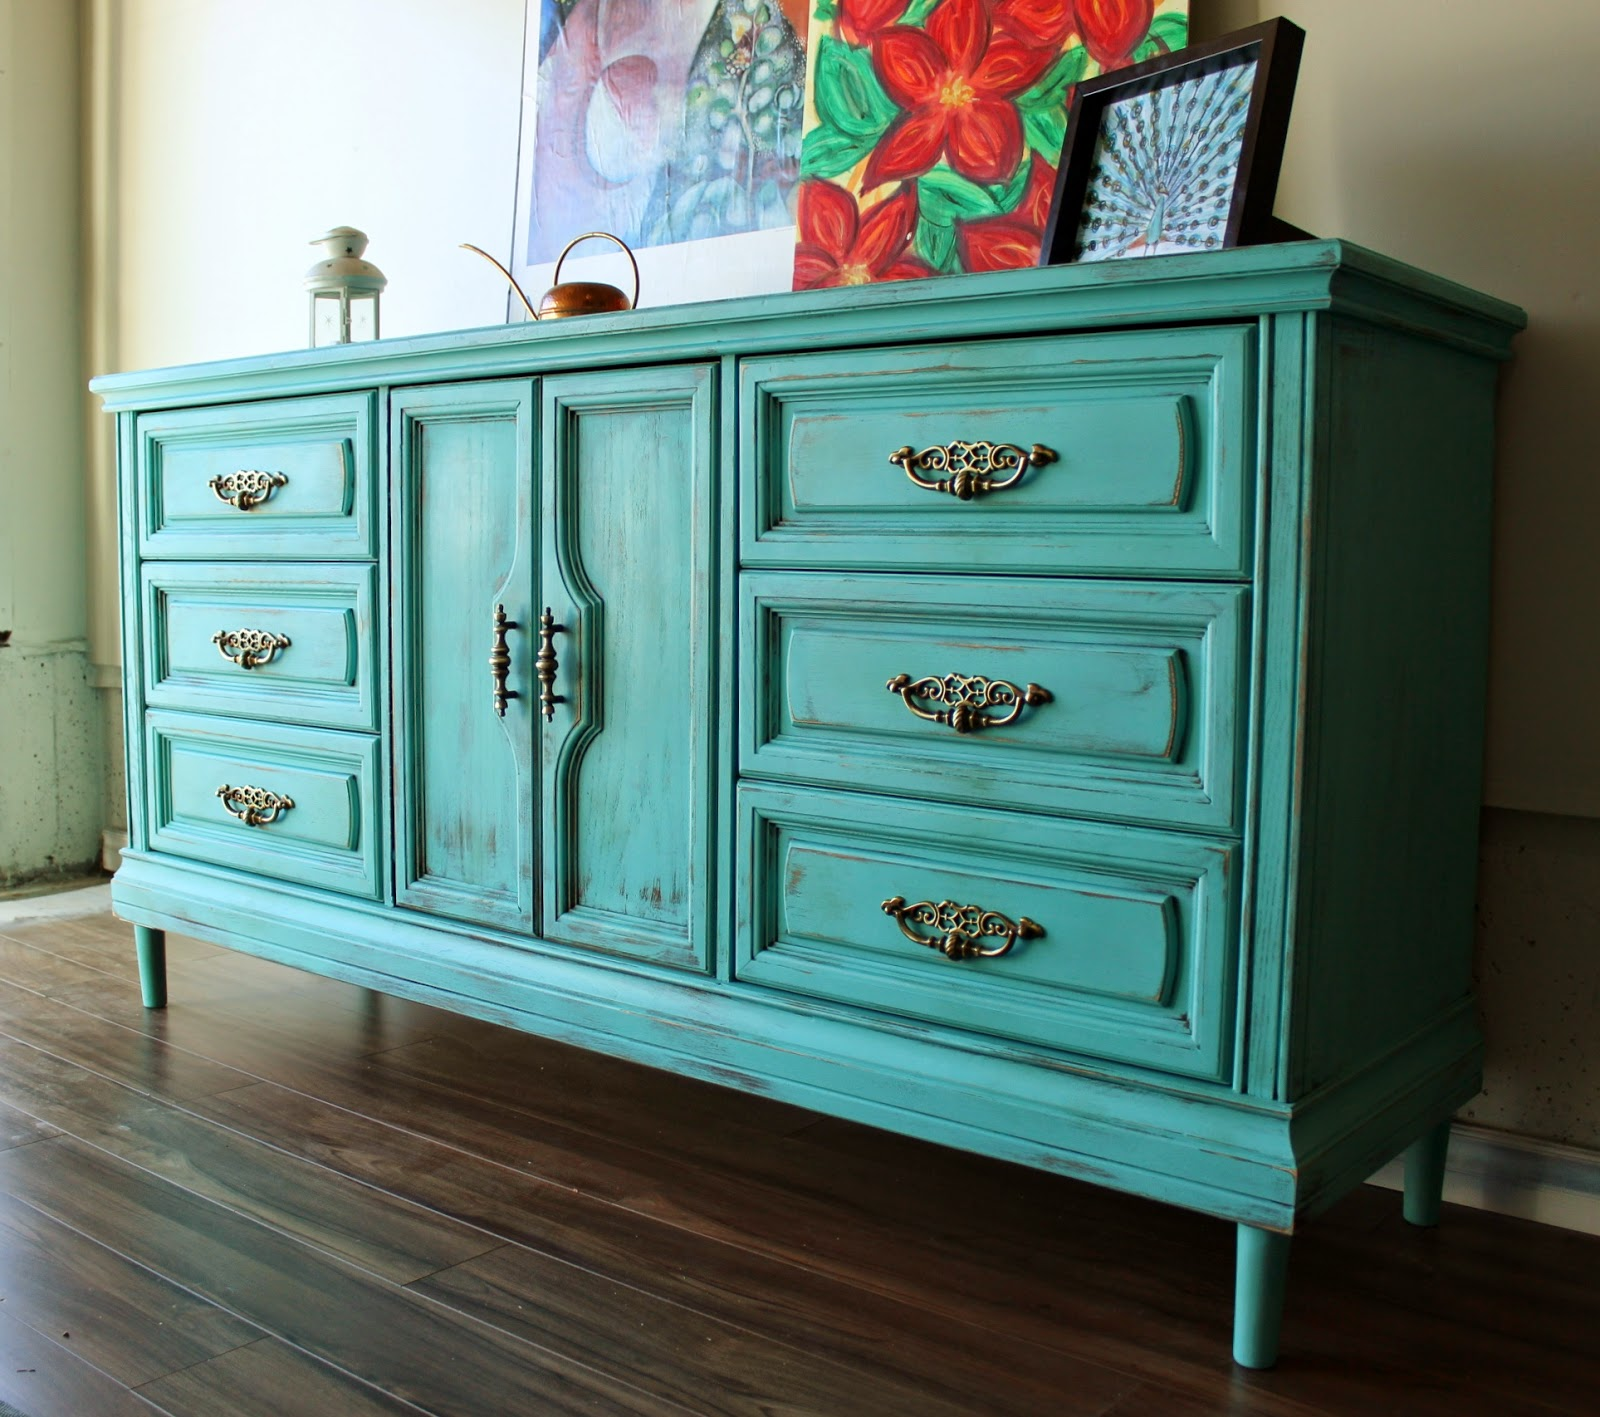 http://re-tiqued.blogspot.ca/2015/01/mint-turquoise-on-dresser-and-on-beach.html